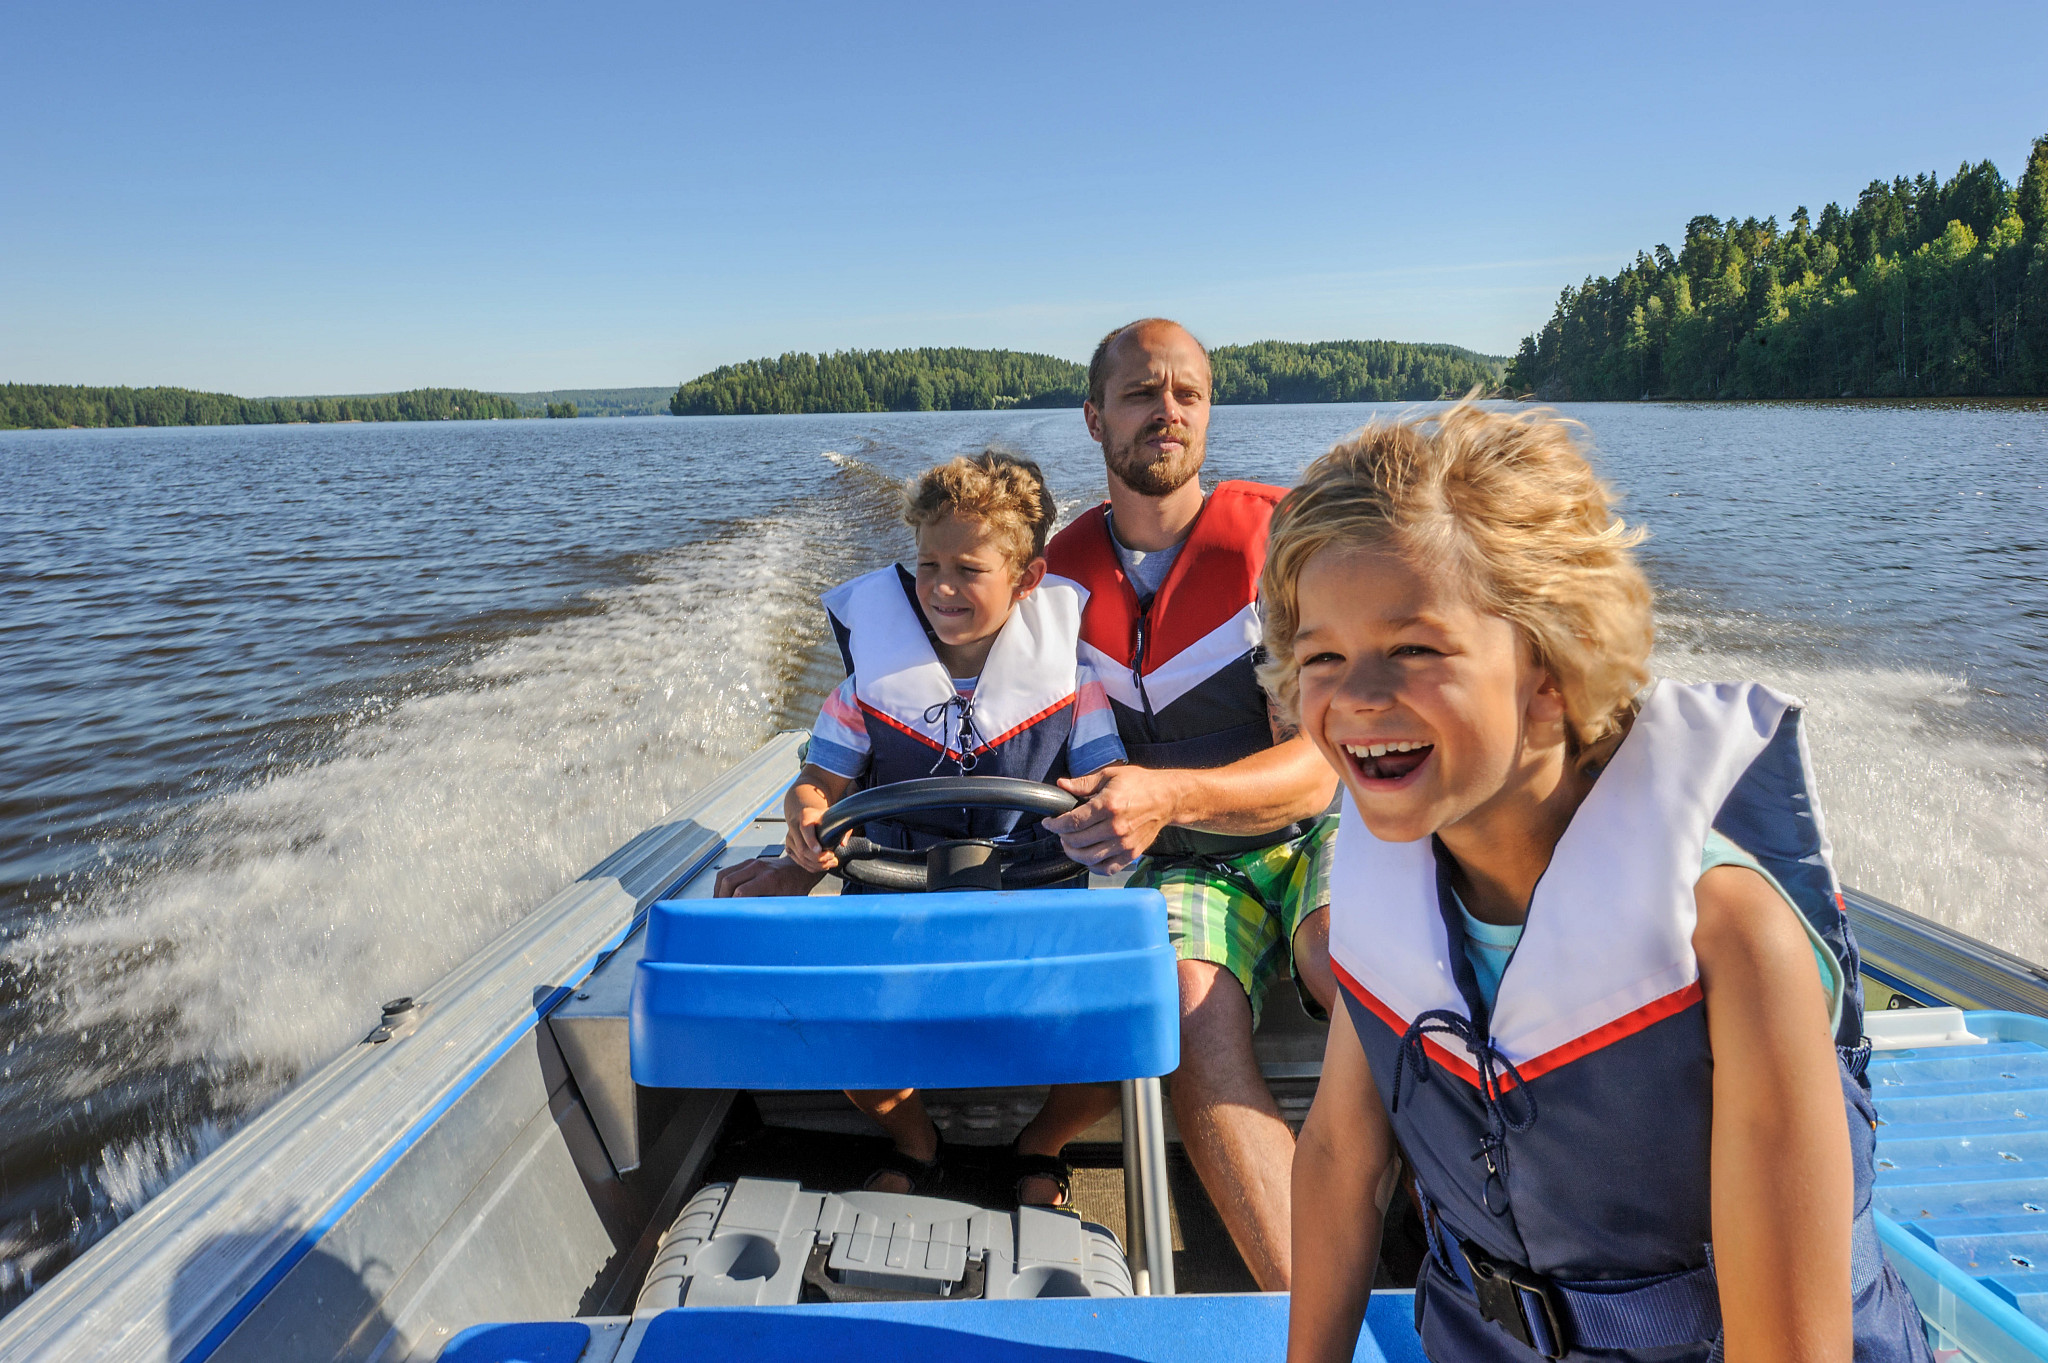 dad and two sons on boat wearing life jackets